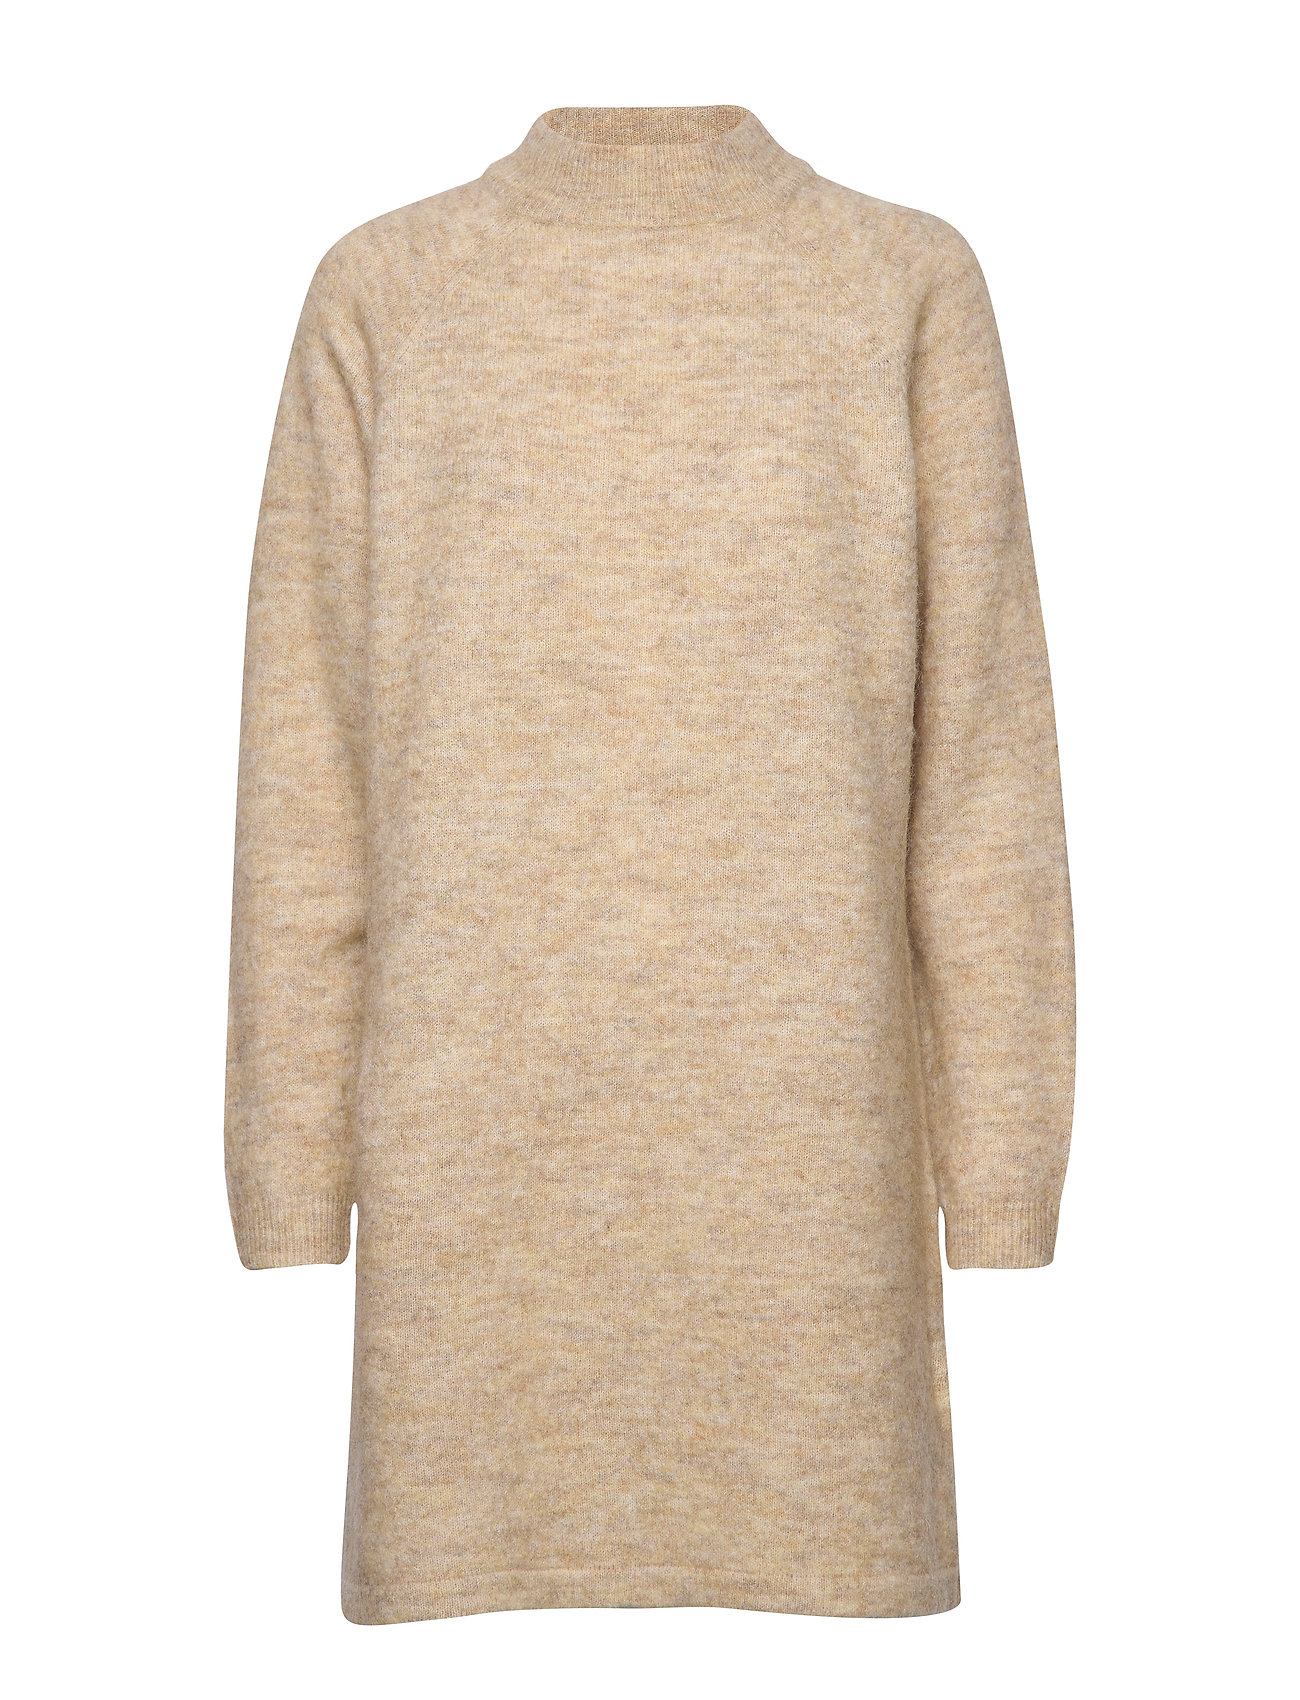 Pulz Jeans PZROSEMARY L/S Dress - BEACH SAND